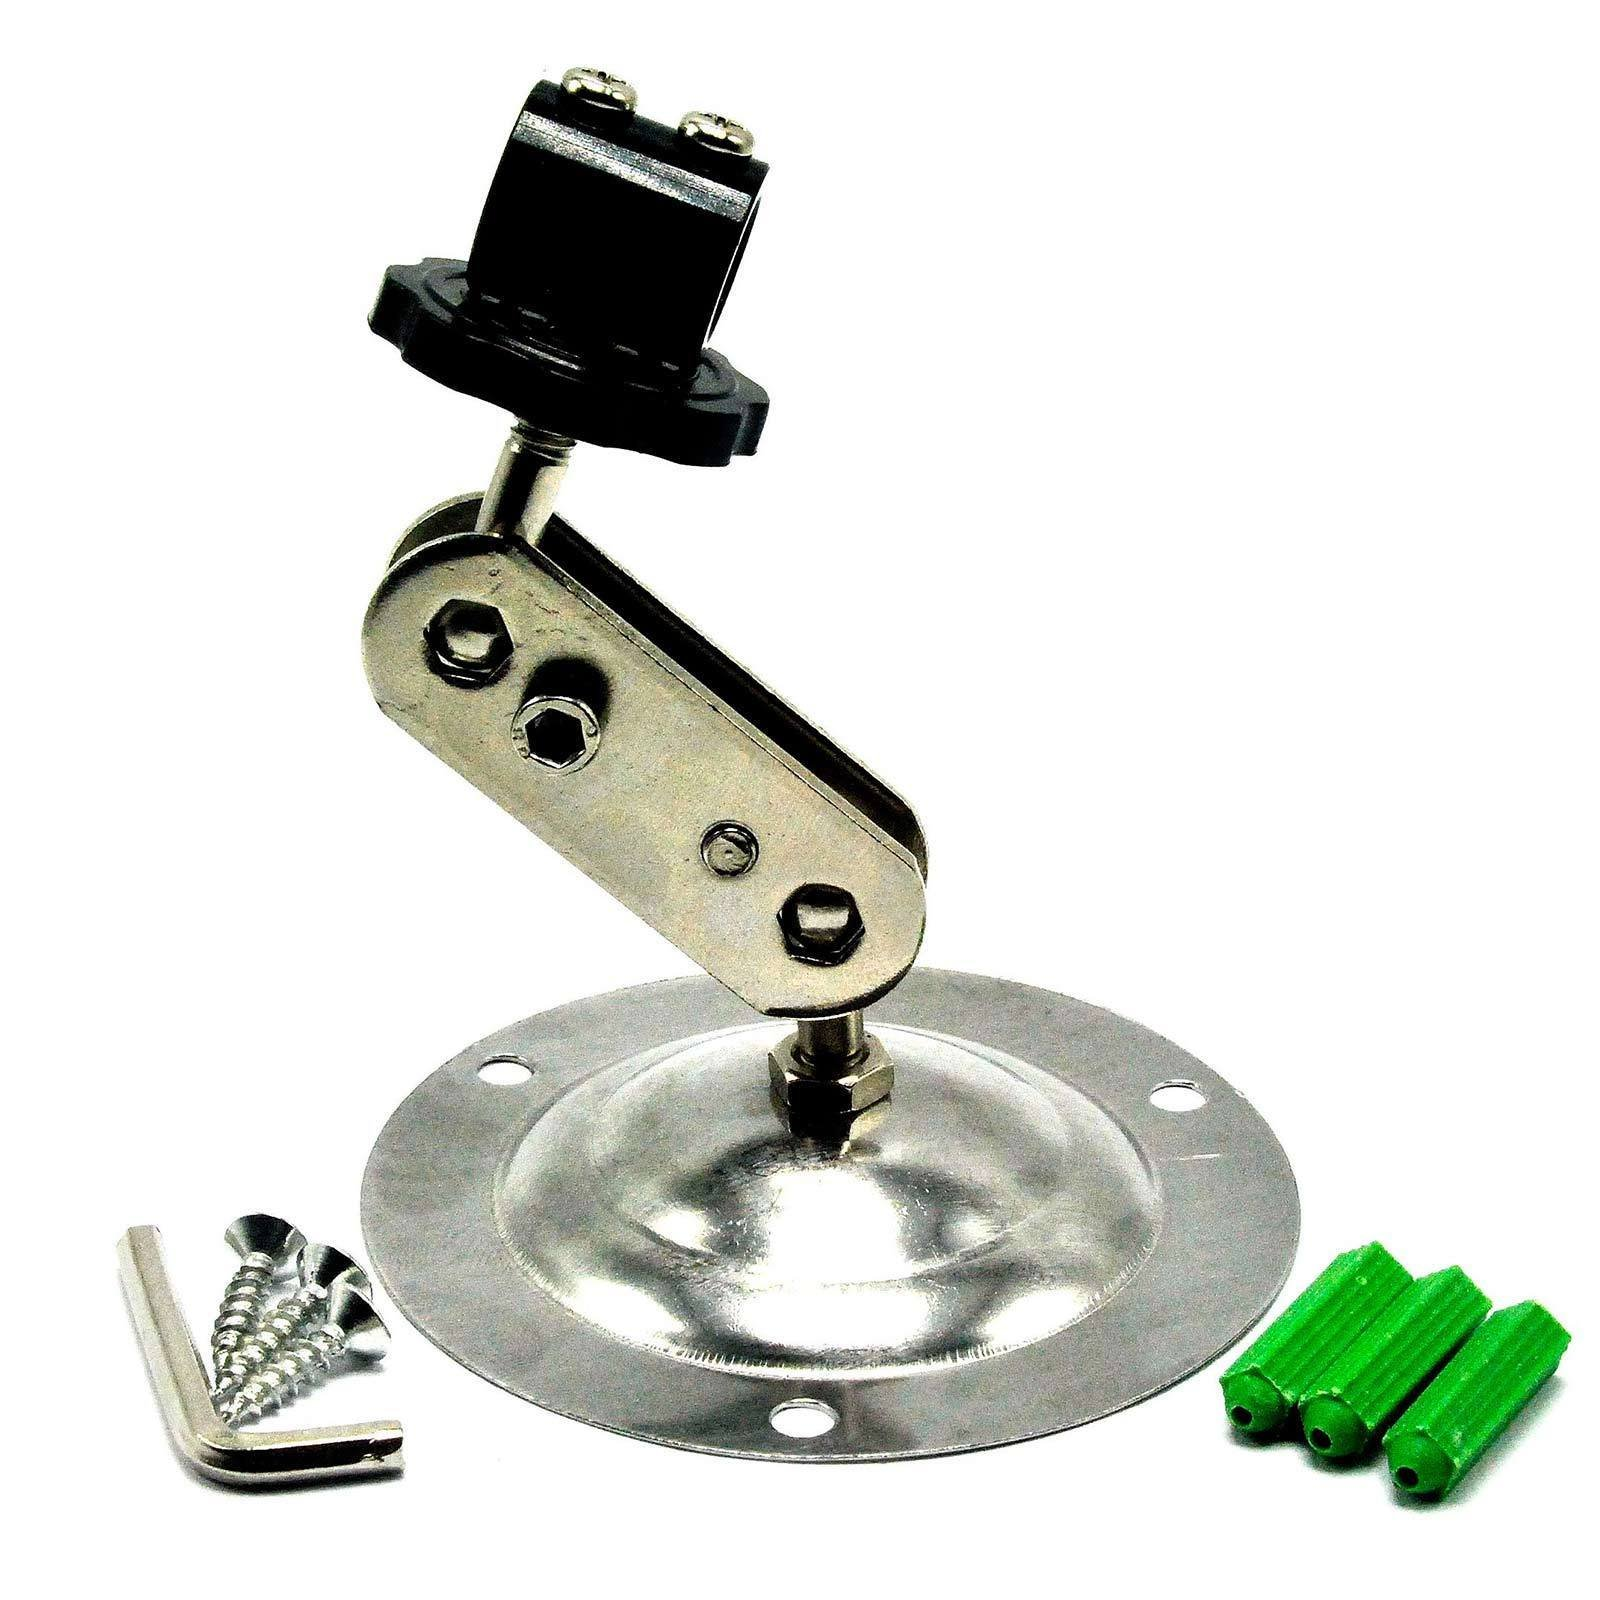 NYBG 360 Degree Adjustable Locate Torch Holder/Clamp/Mount For Laser Module 4 Sizes For Choice (22mm)